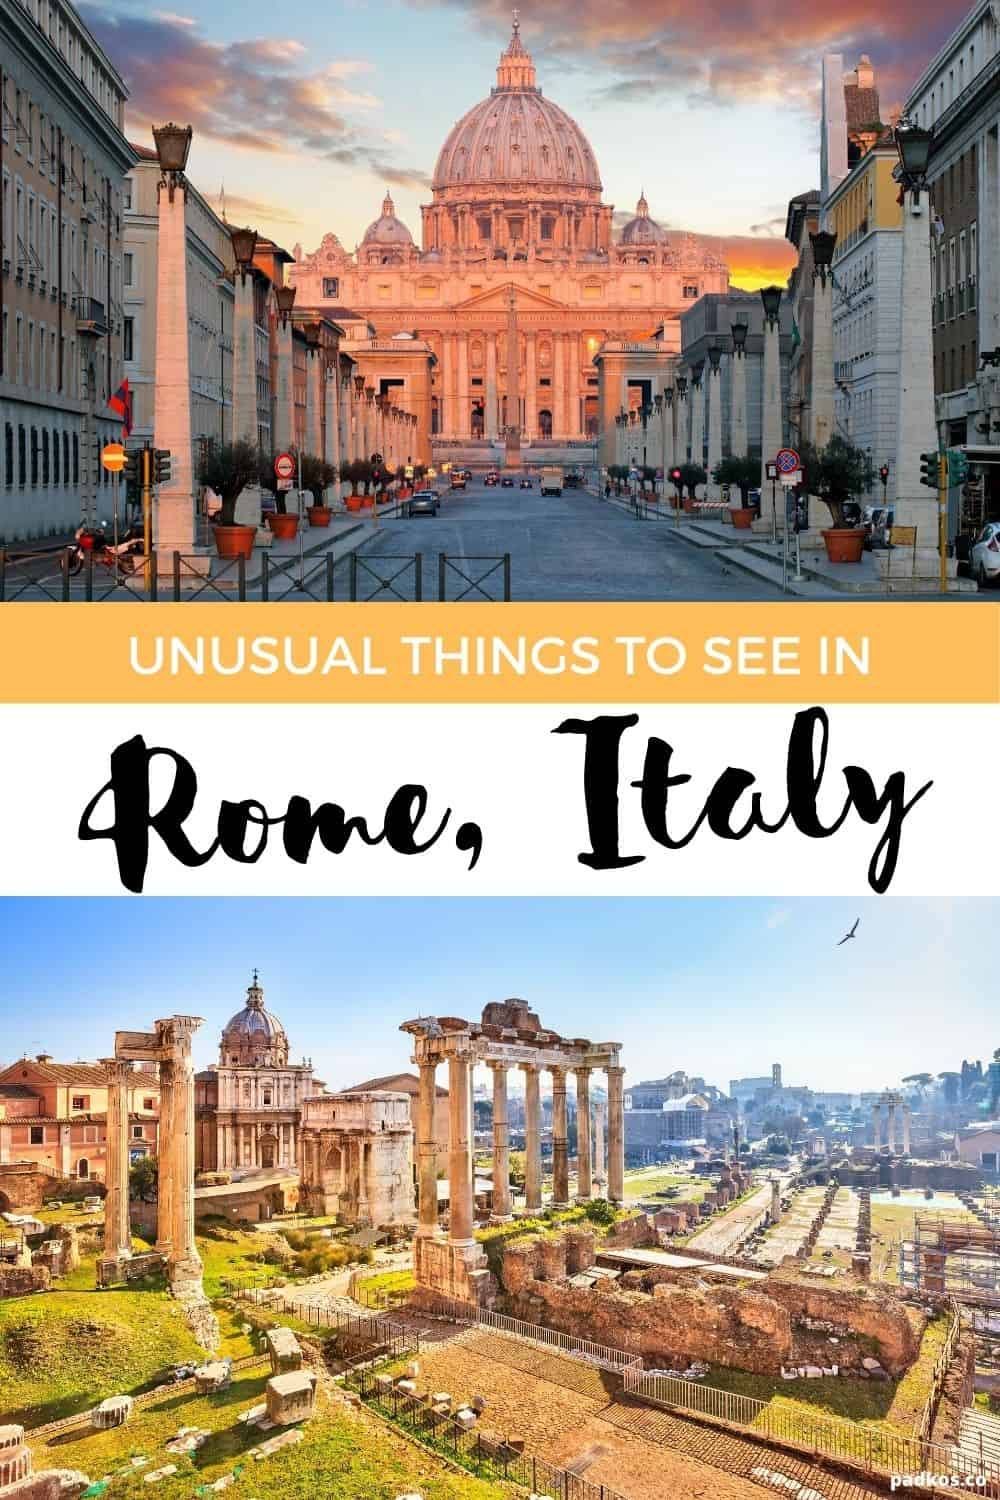 The Most Unusual things to see in Rome, Italy